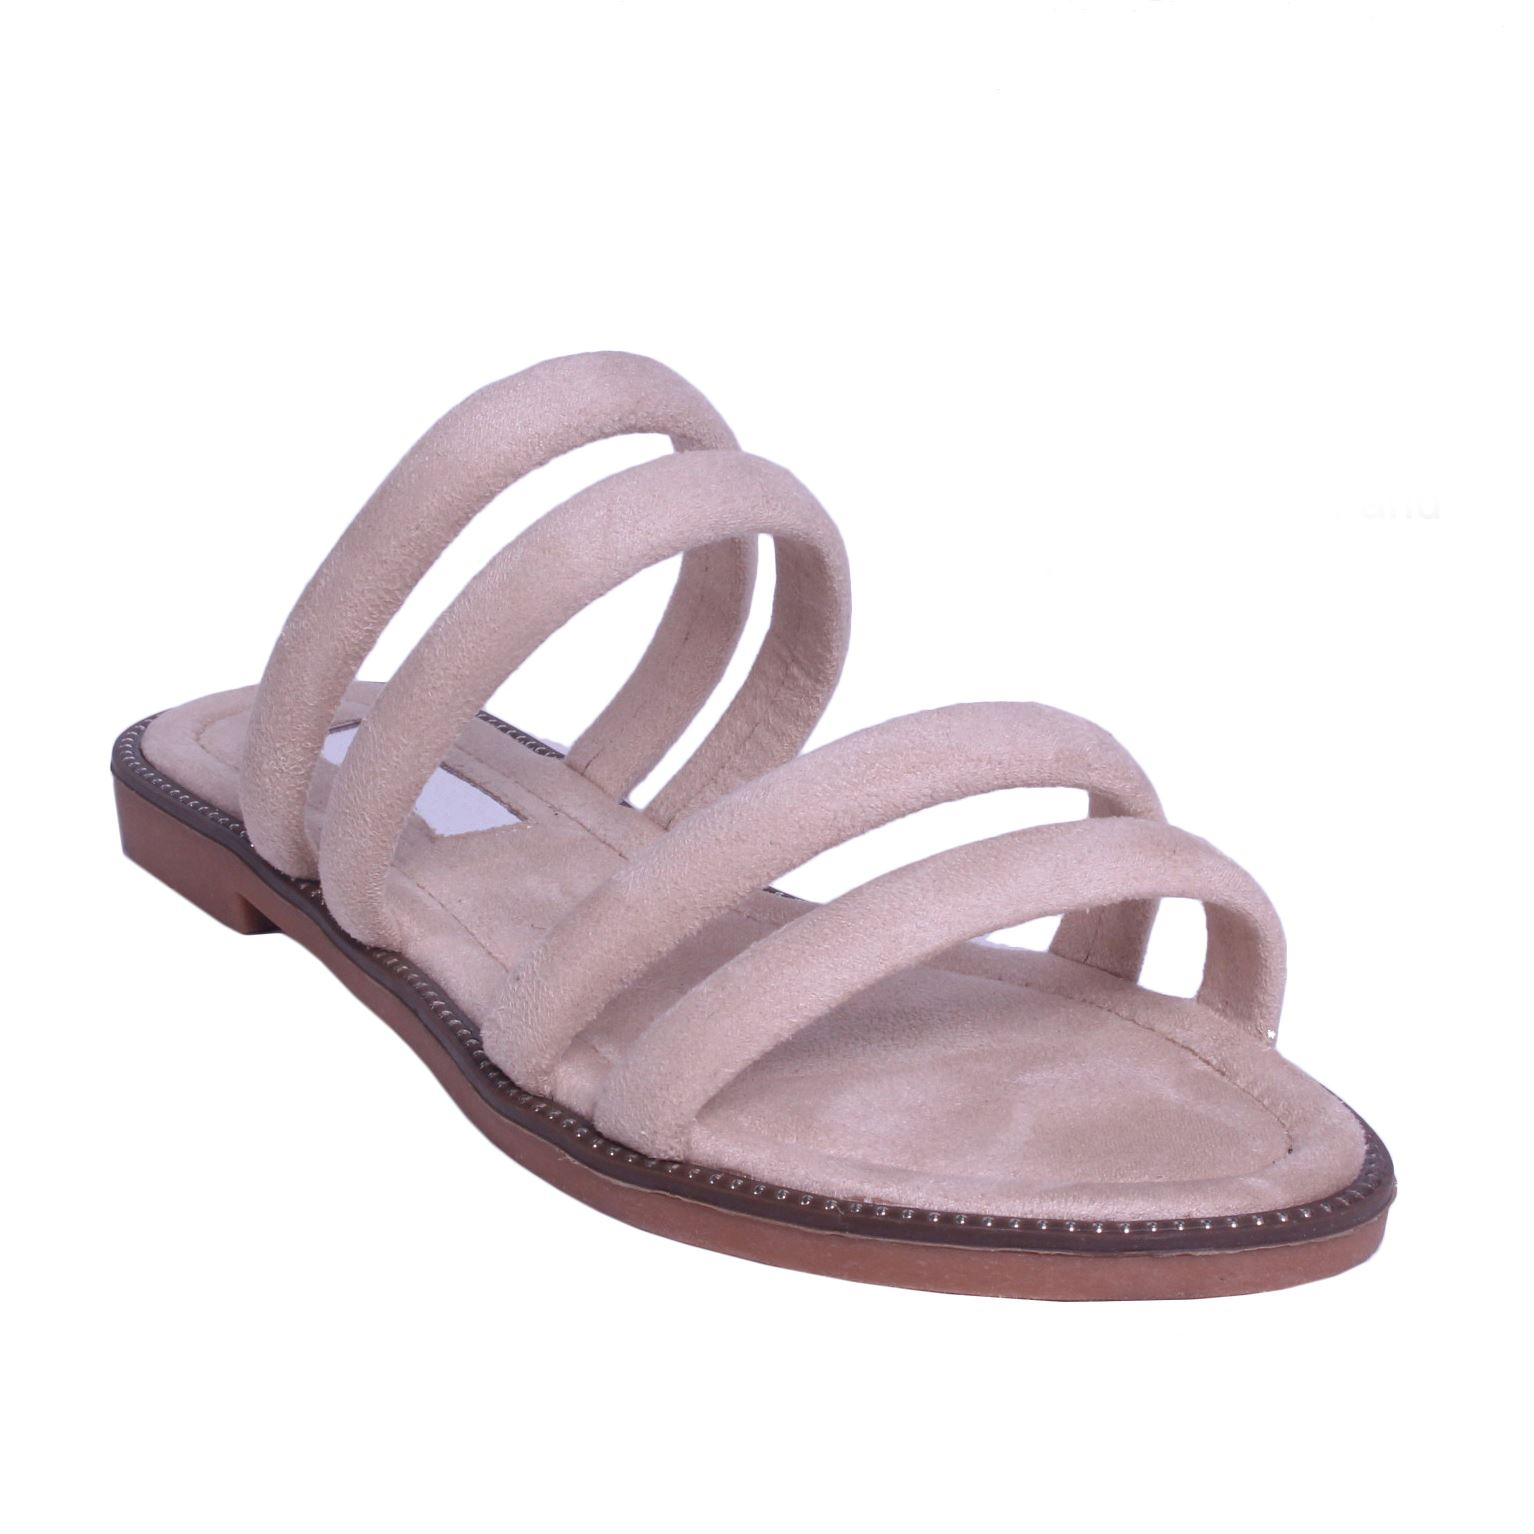 Womens-Ladies-Flat-Slip-On-Sandals-Strappy-Summer-Holiday-Slides-Mules-Shoe-SIze thumbnail 5